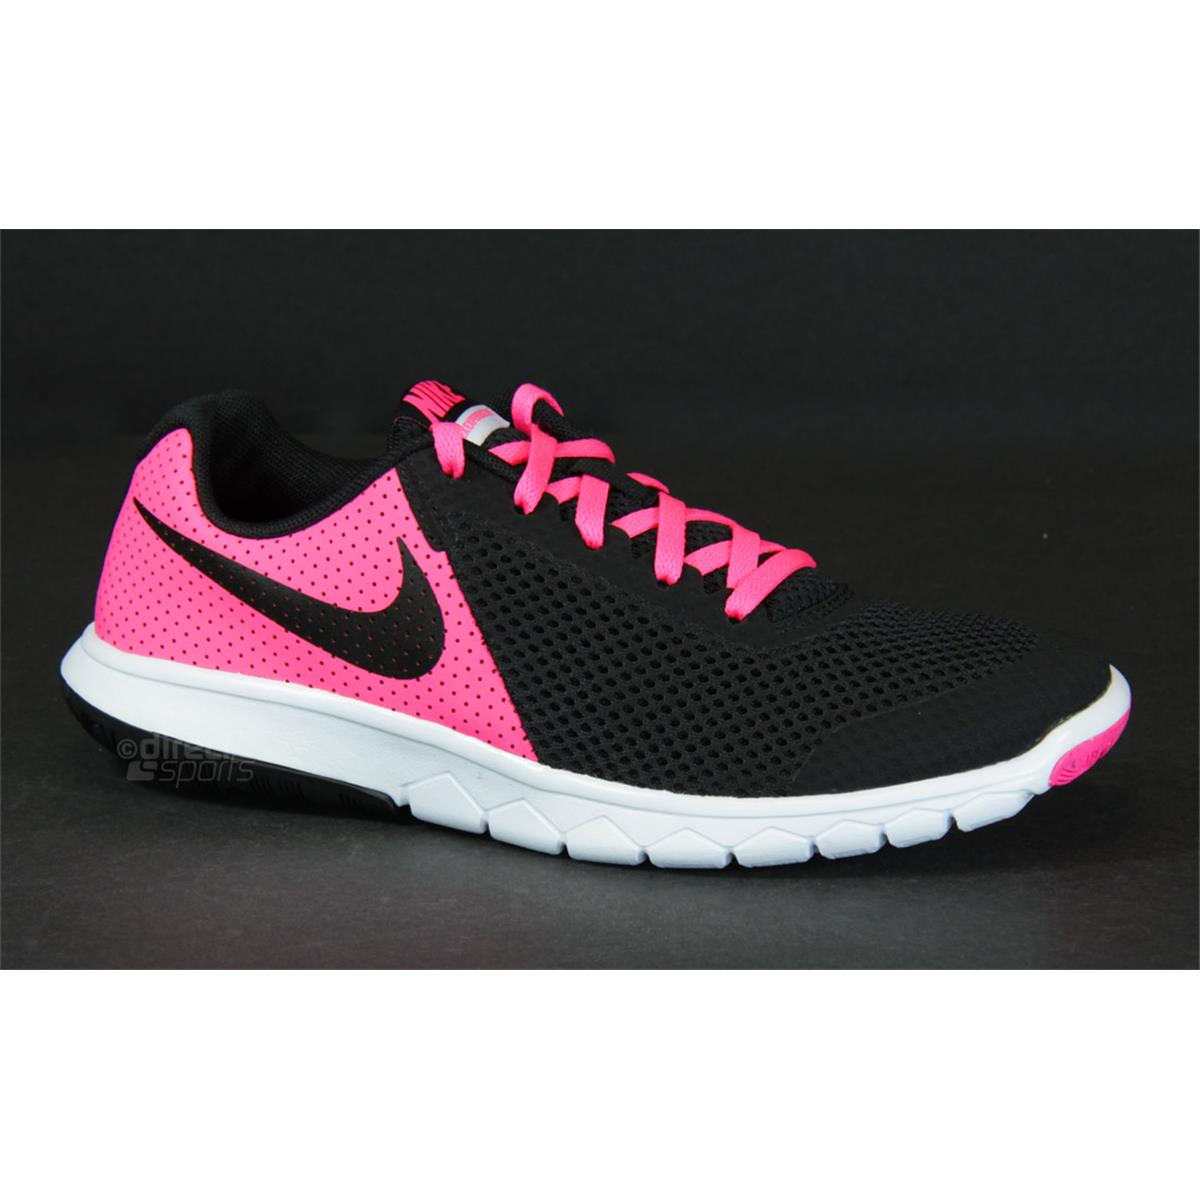 size 40 fbdd8 c9afb Nike Flex Experience 5 GS Junior Running Shoes (Pink-Black) | Direct ...